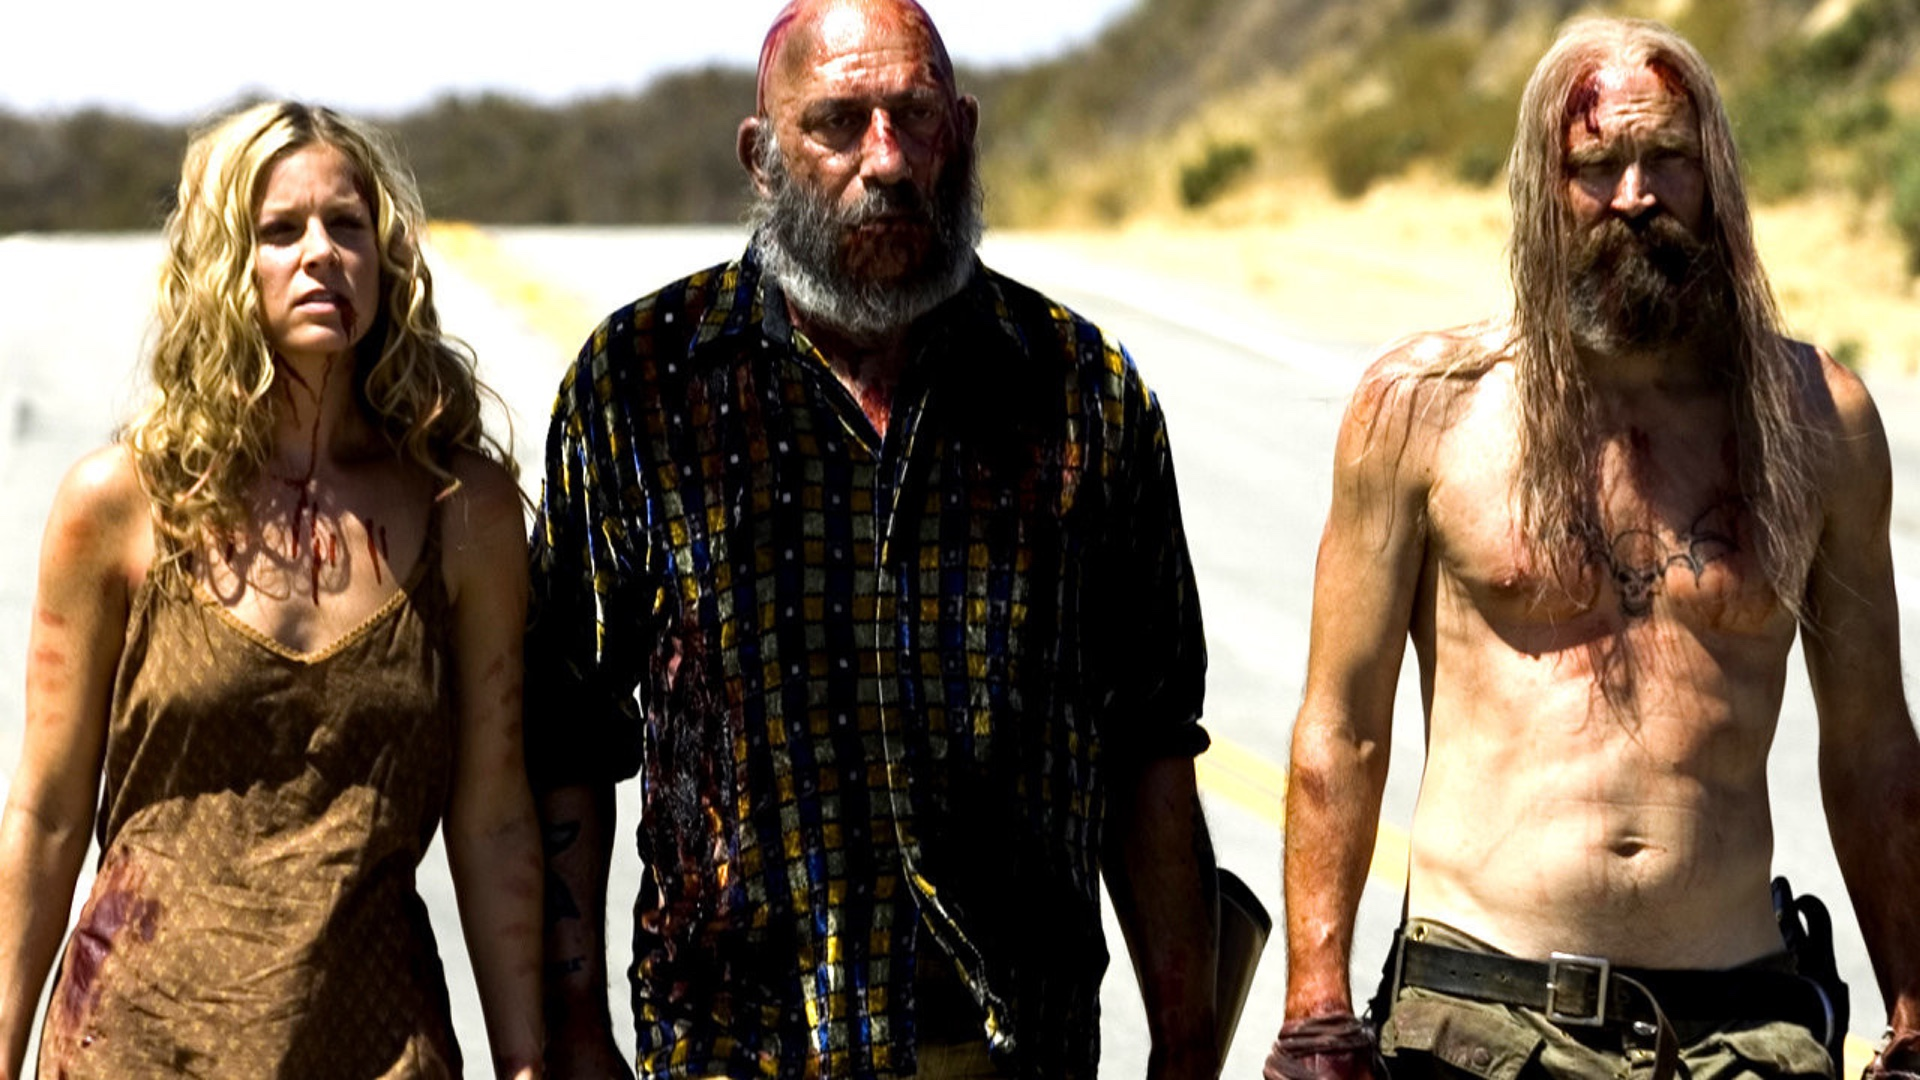 The Devil's Rejects (2005) Review